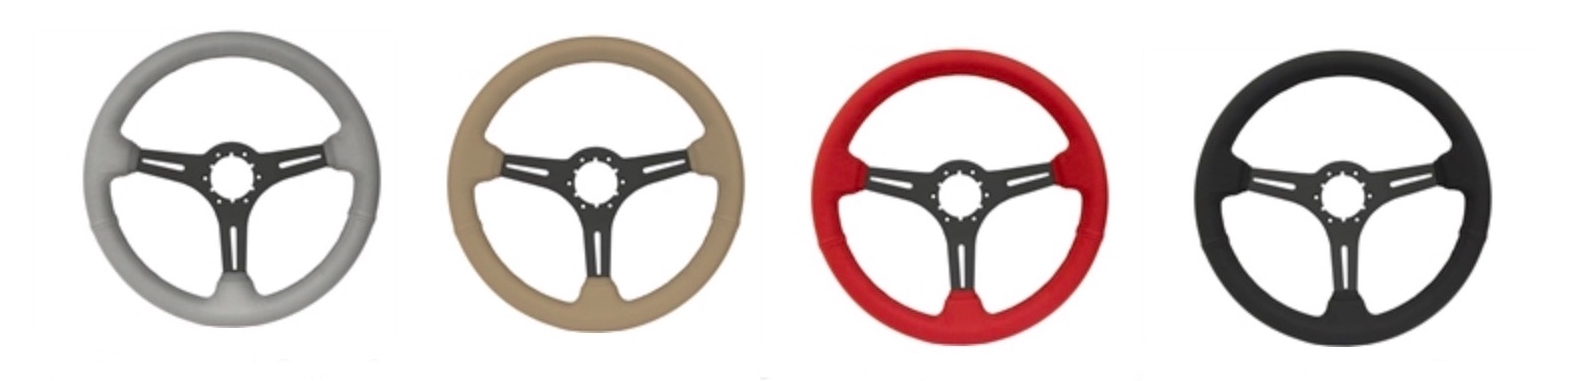 1967-1976 S6 Sport Premium Leather Steering Wheel (w/Black Anodized Center)